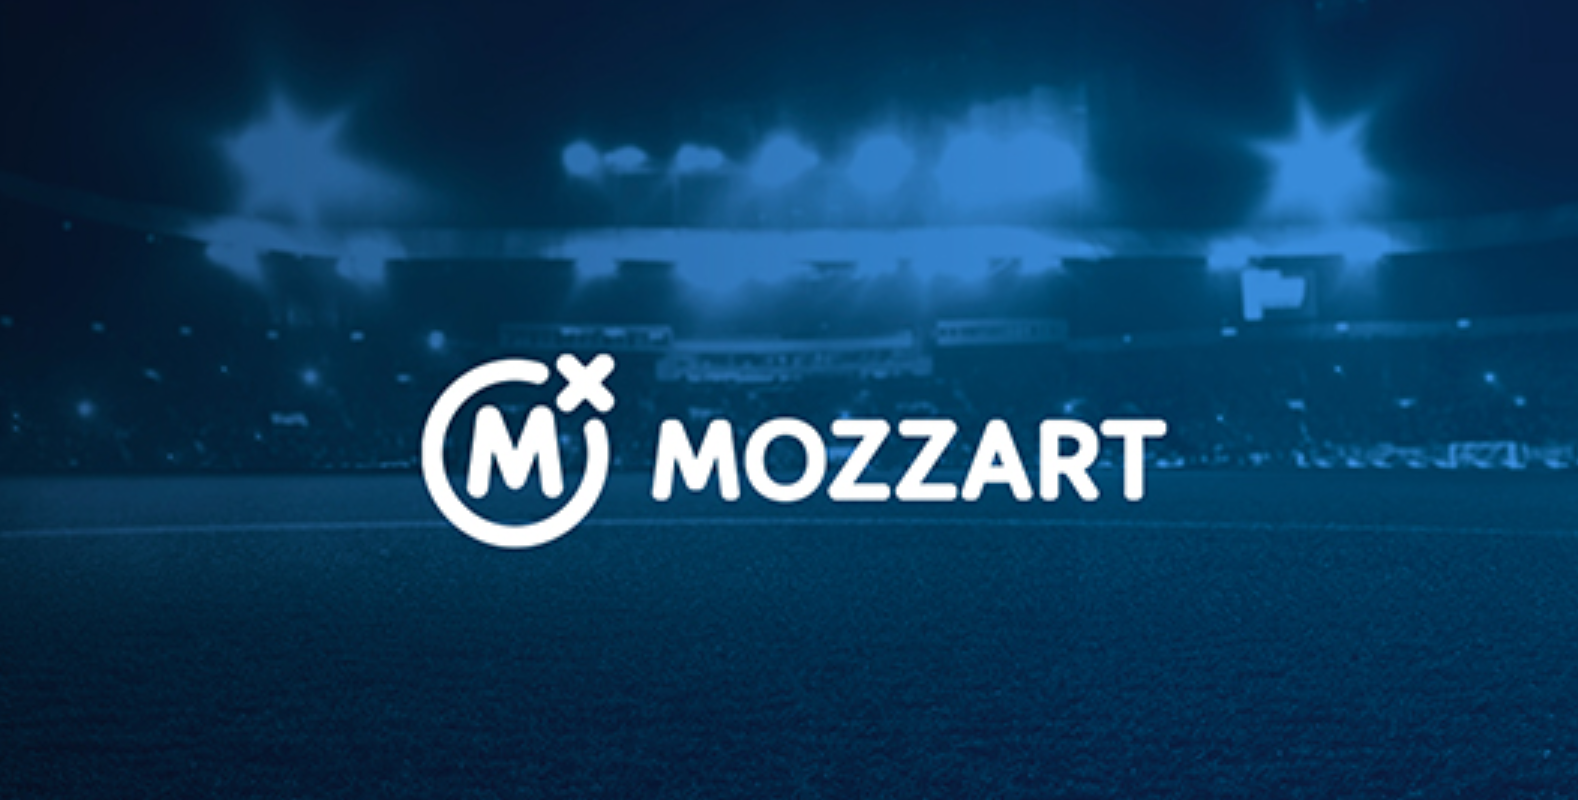 Other entertainment types available on Mozzart's website for customers from Kenya